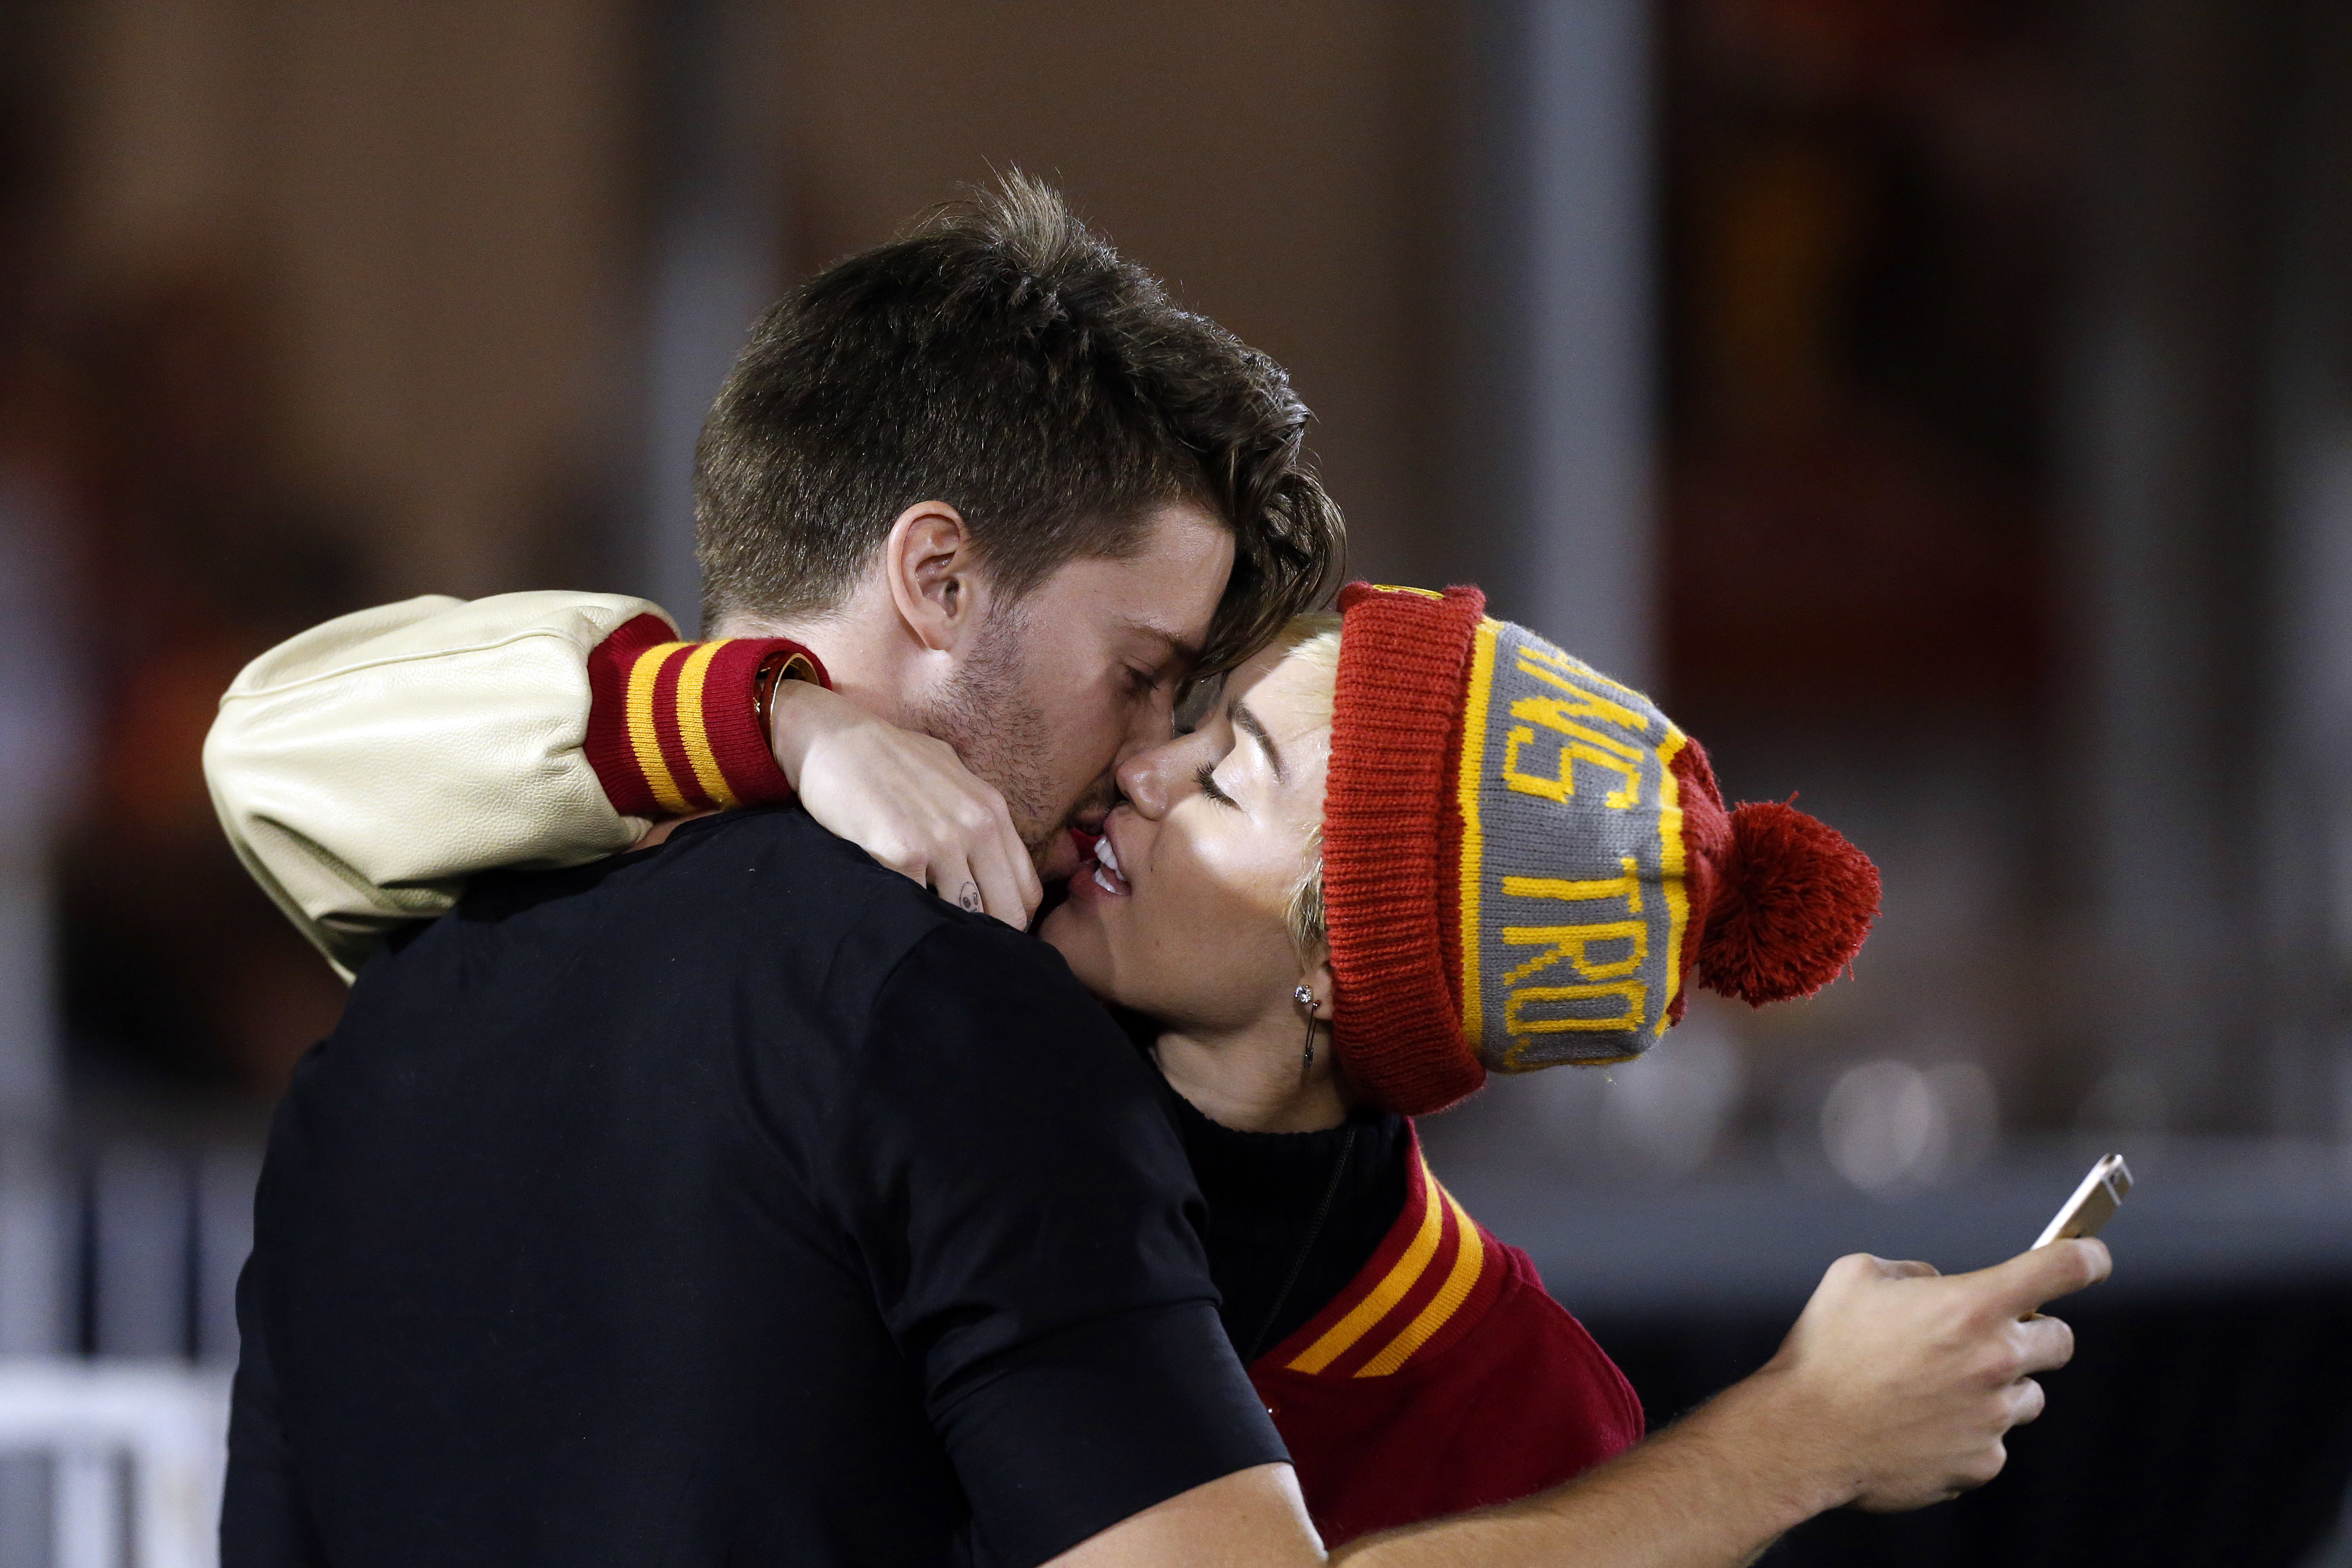 Miley Cyrus makes out with Patrick Schwarzenegger